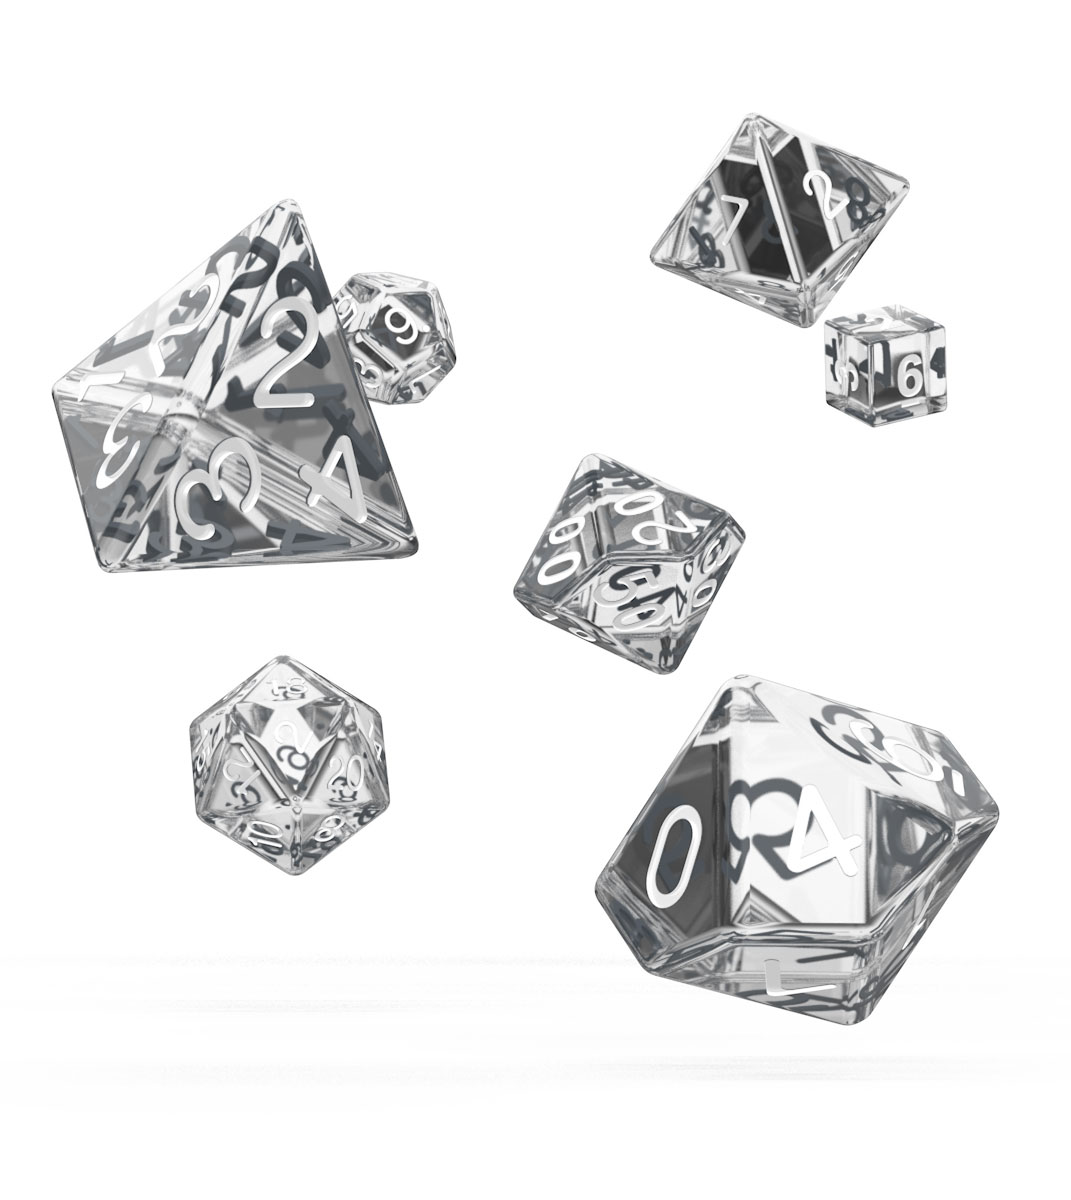 Oakie Doakie Dice dés RPG-Set Translucent - Transparent (7)